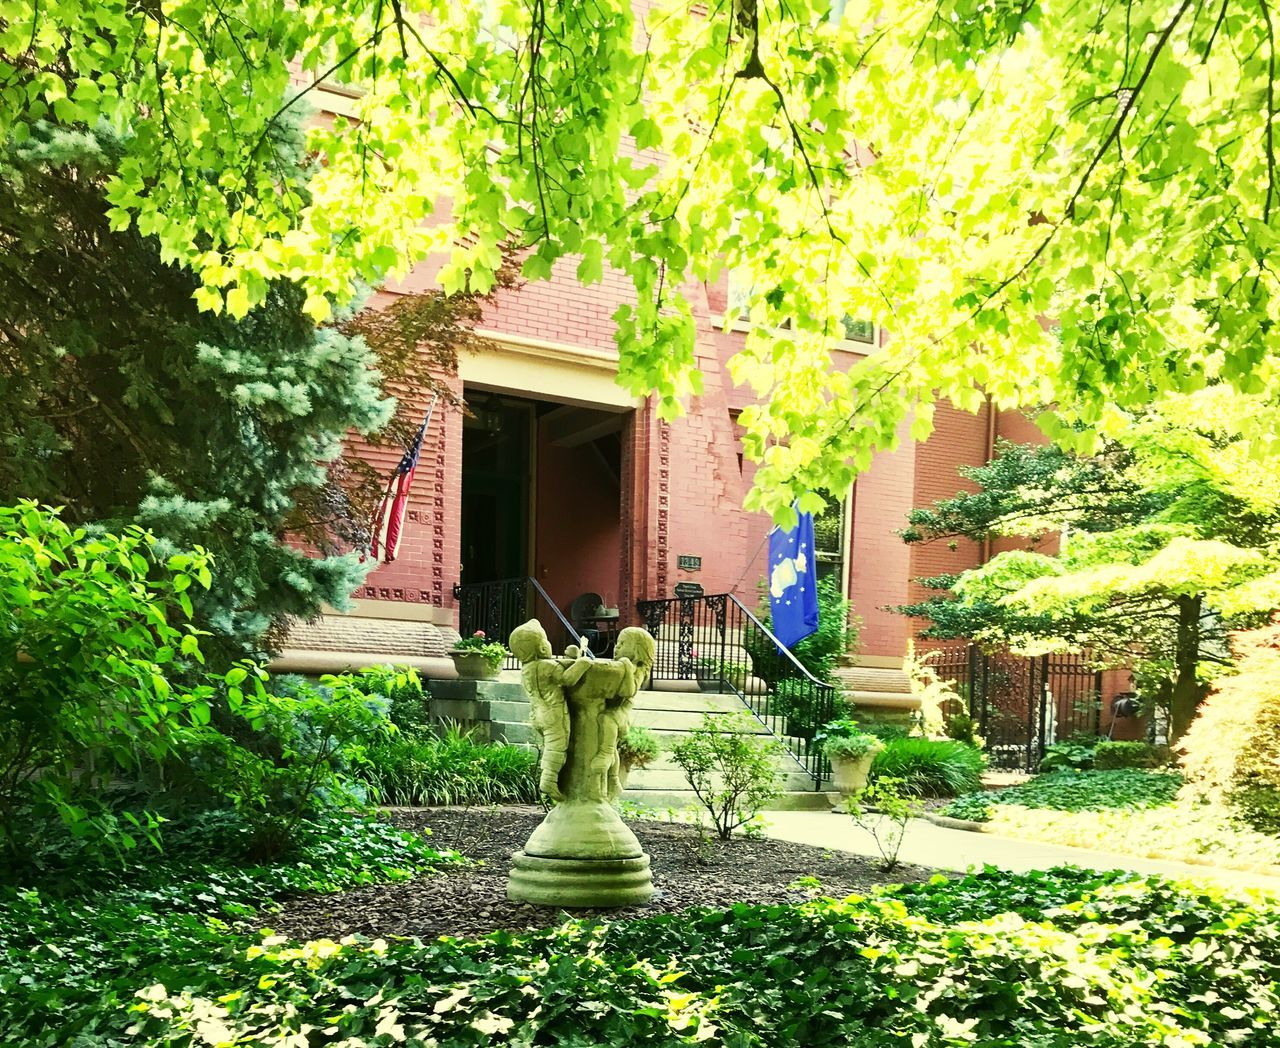 statue, architecture, tree, growth, day, built structure, no people, plant, building exterior, grass, sculpture, outdoors, green color, sunlight, nature, beauty in nature